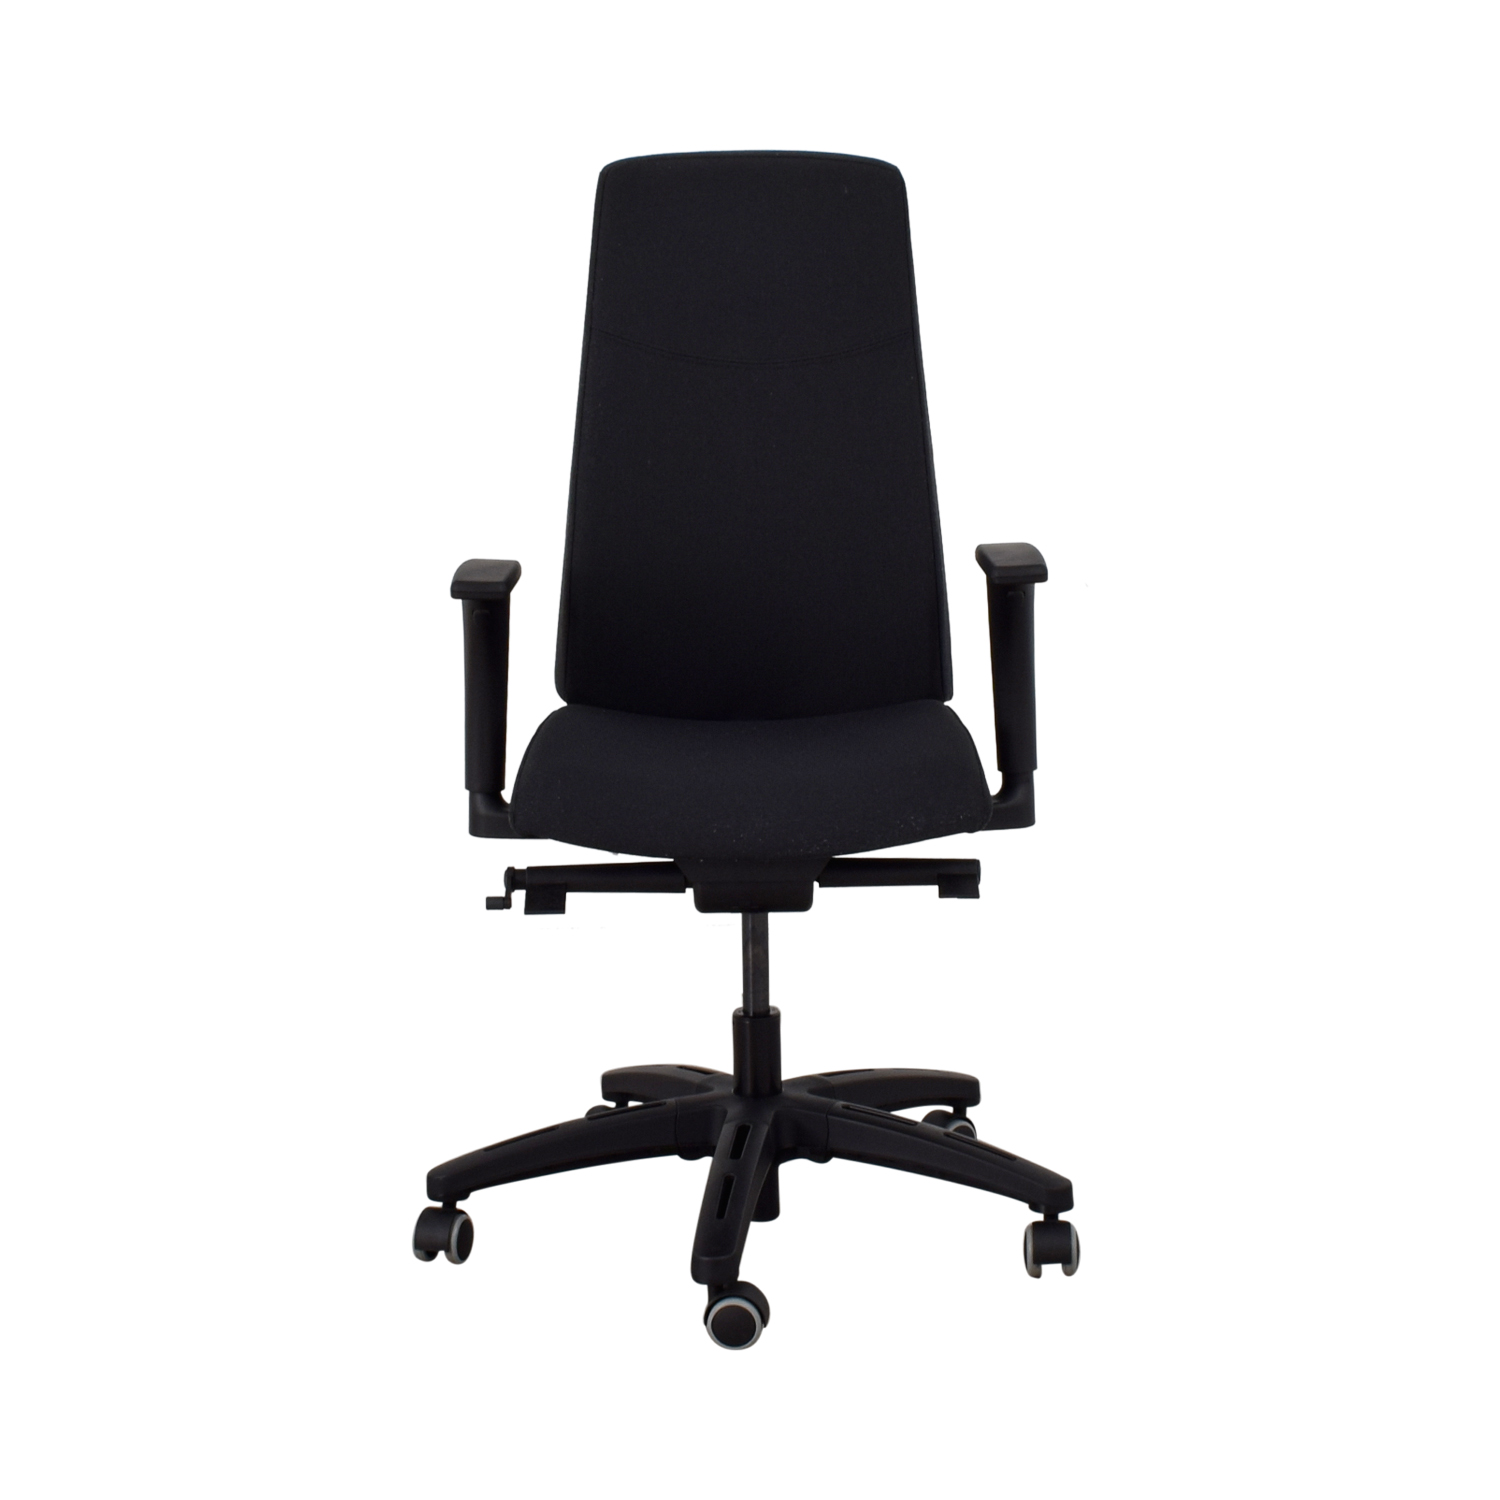 ikea chairs office. Buy IKEA Volmar Grey Office Chair With Arms Chairs Ikea G